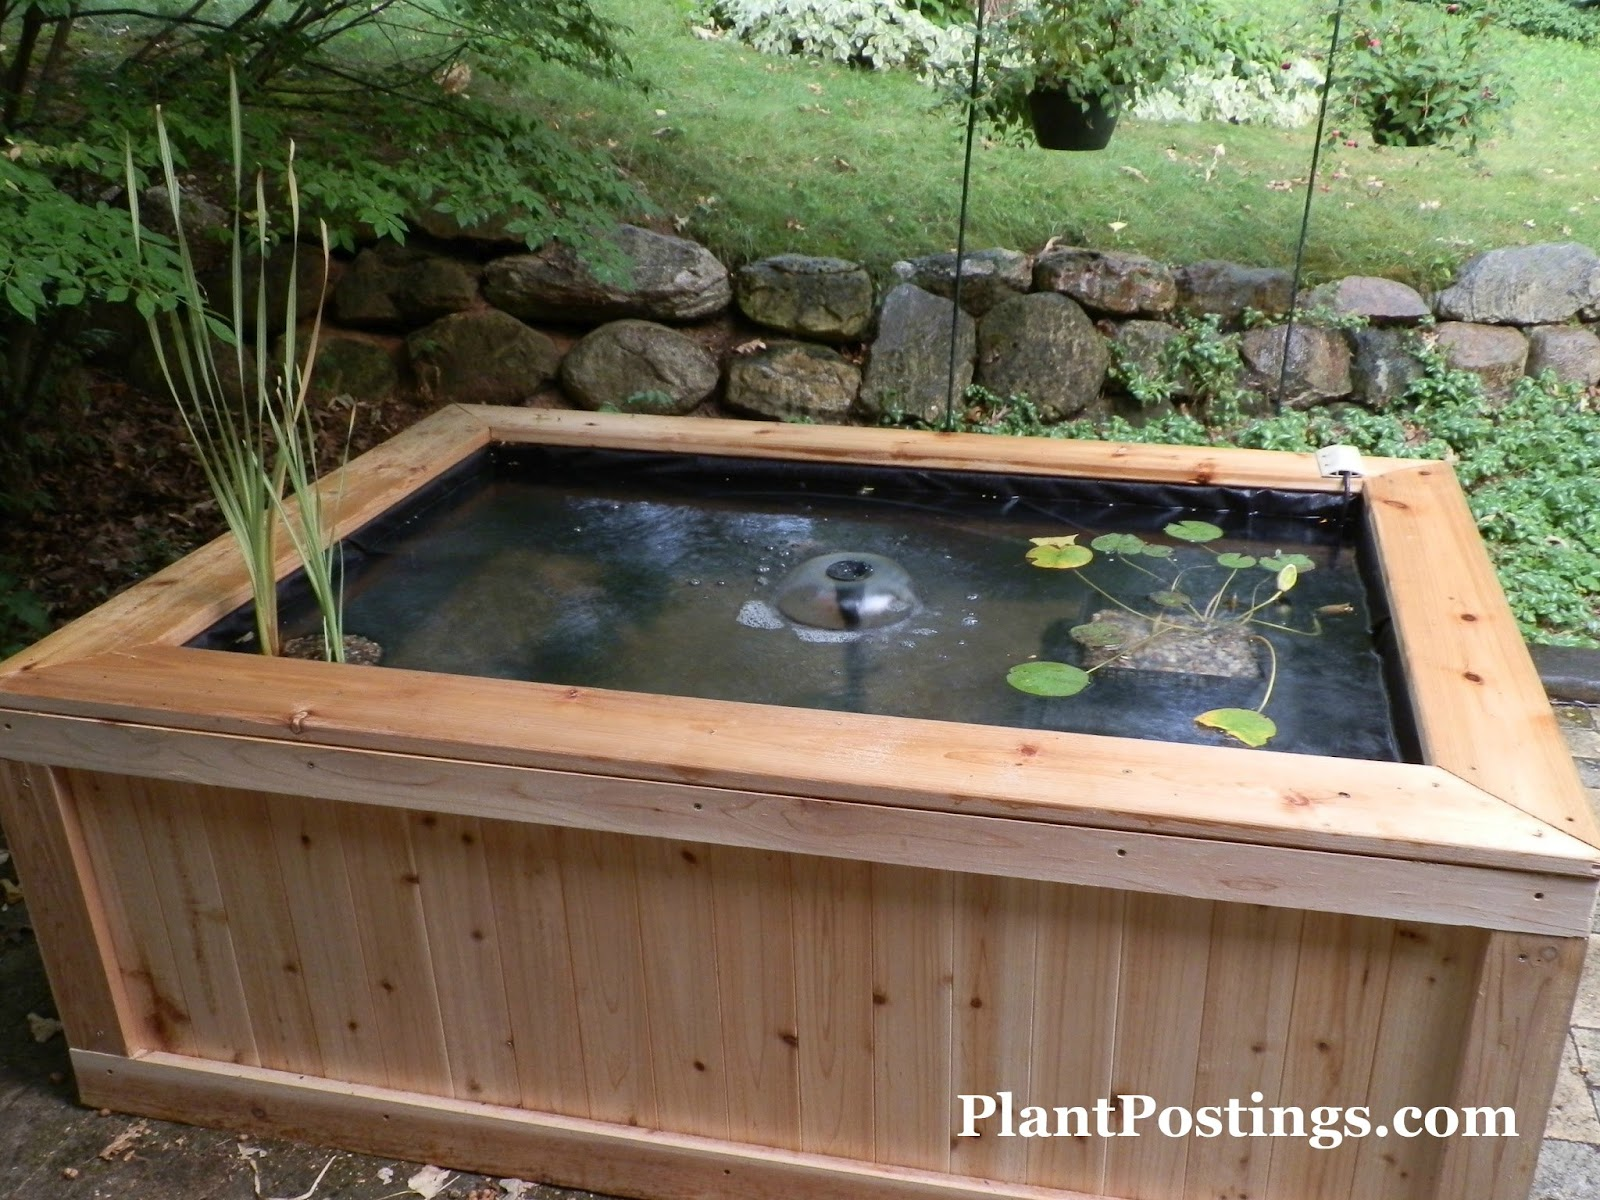 Plantpostings how to make an above ground pond for In ground koi pond